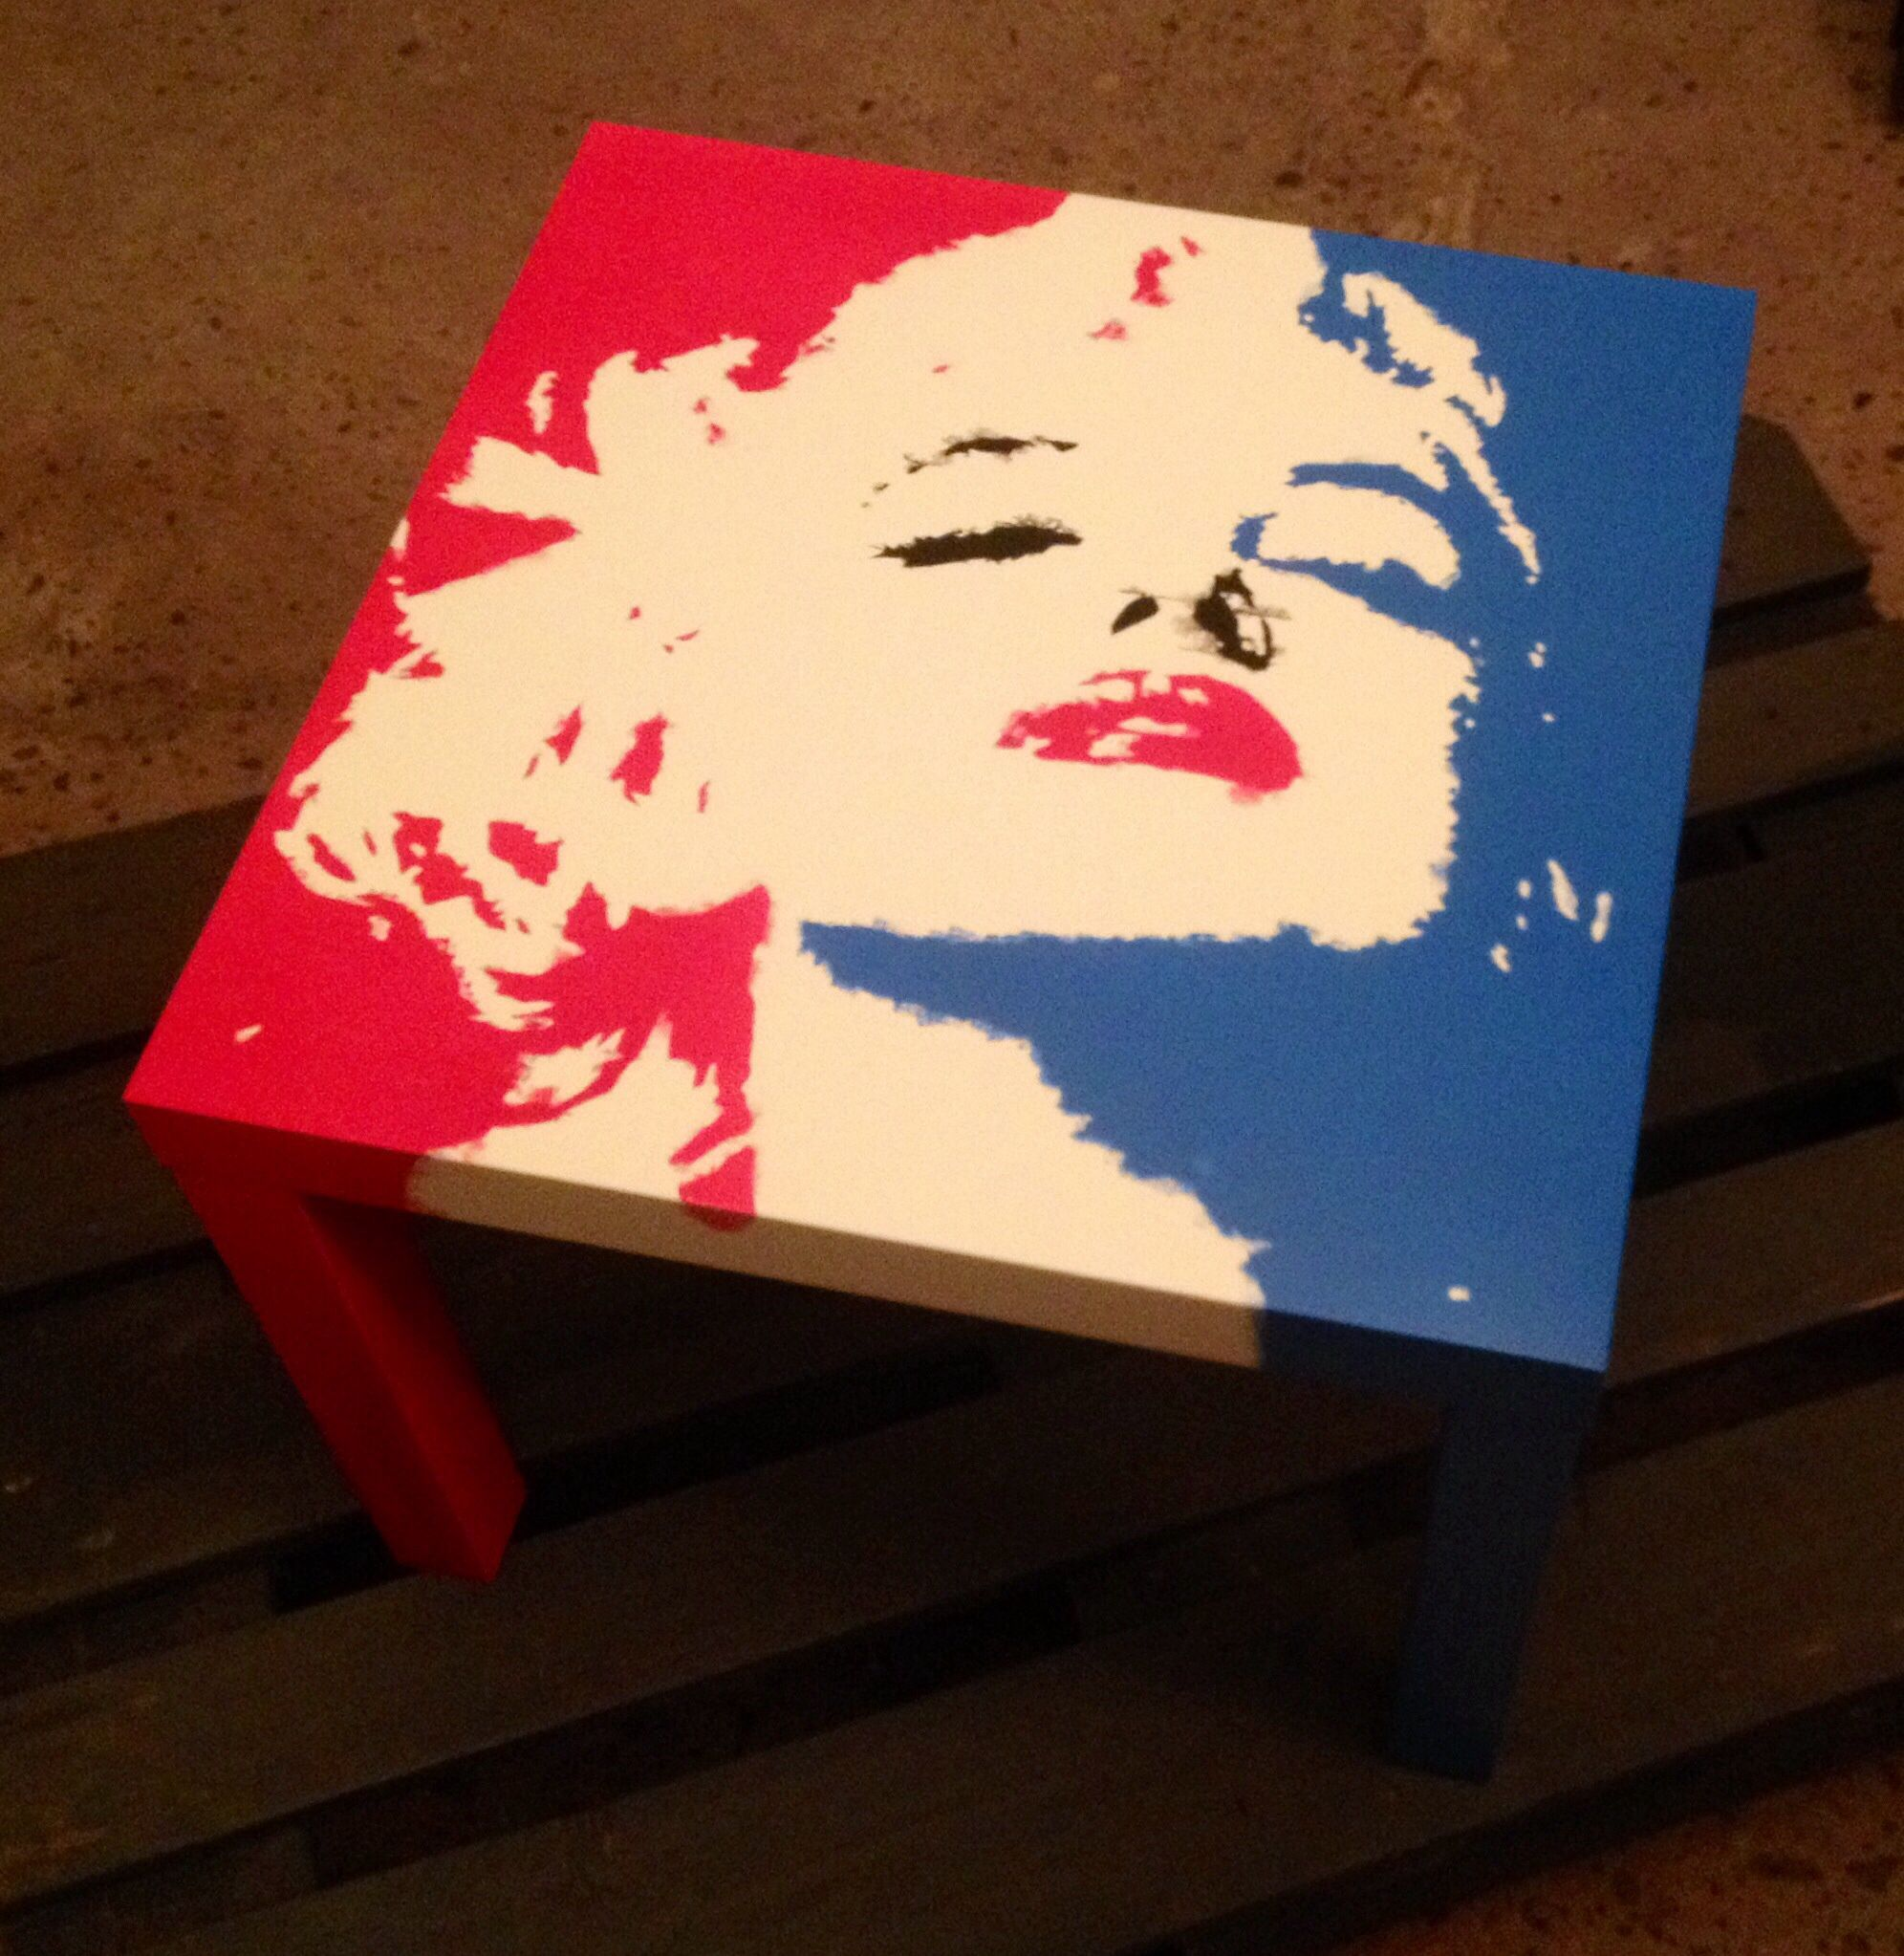 Marilyn Monroe - Ikea table | Pop-art made by me | Pinterest | Ikea ...